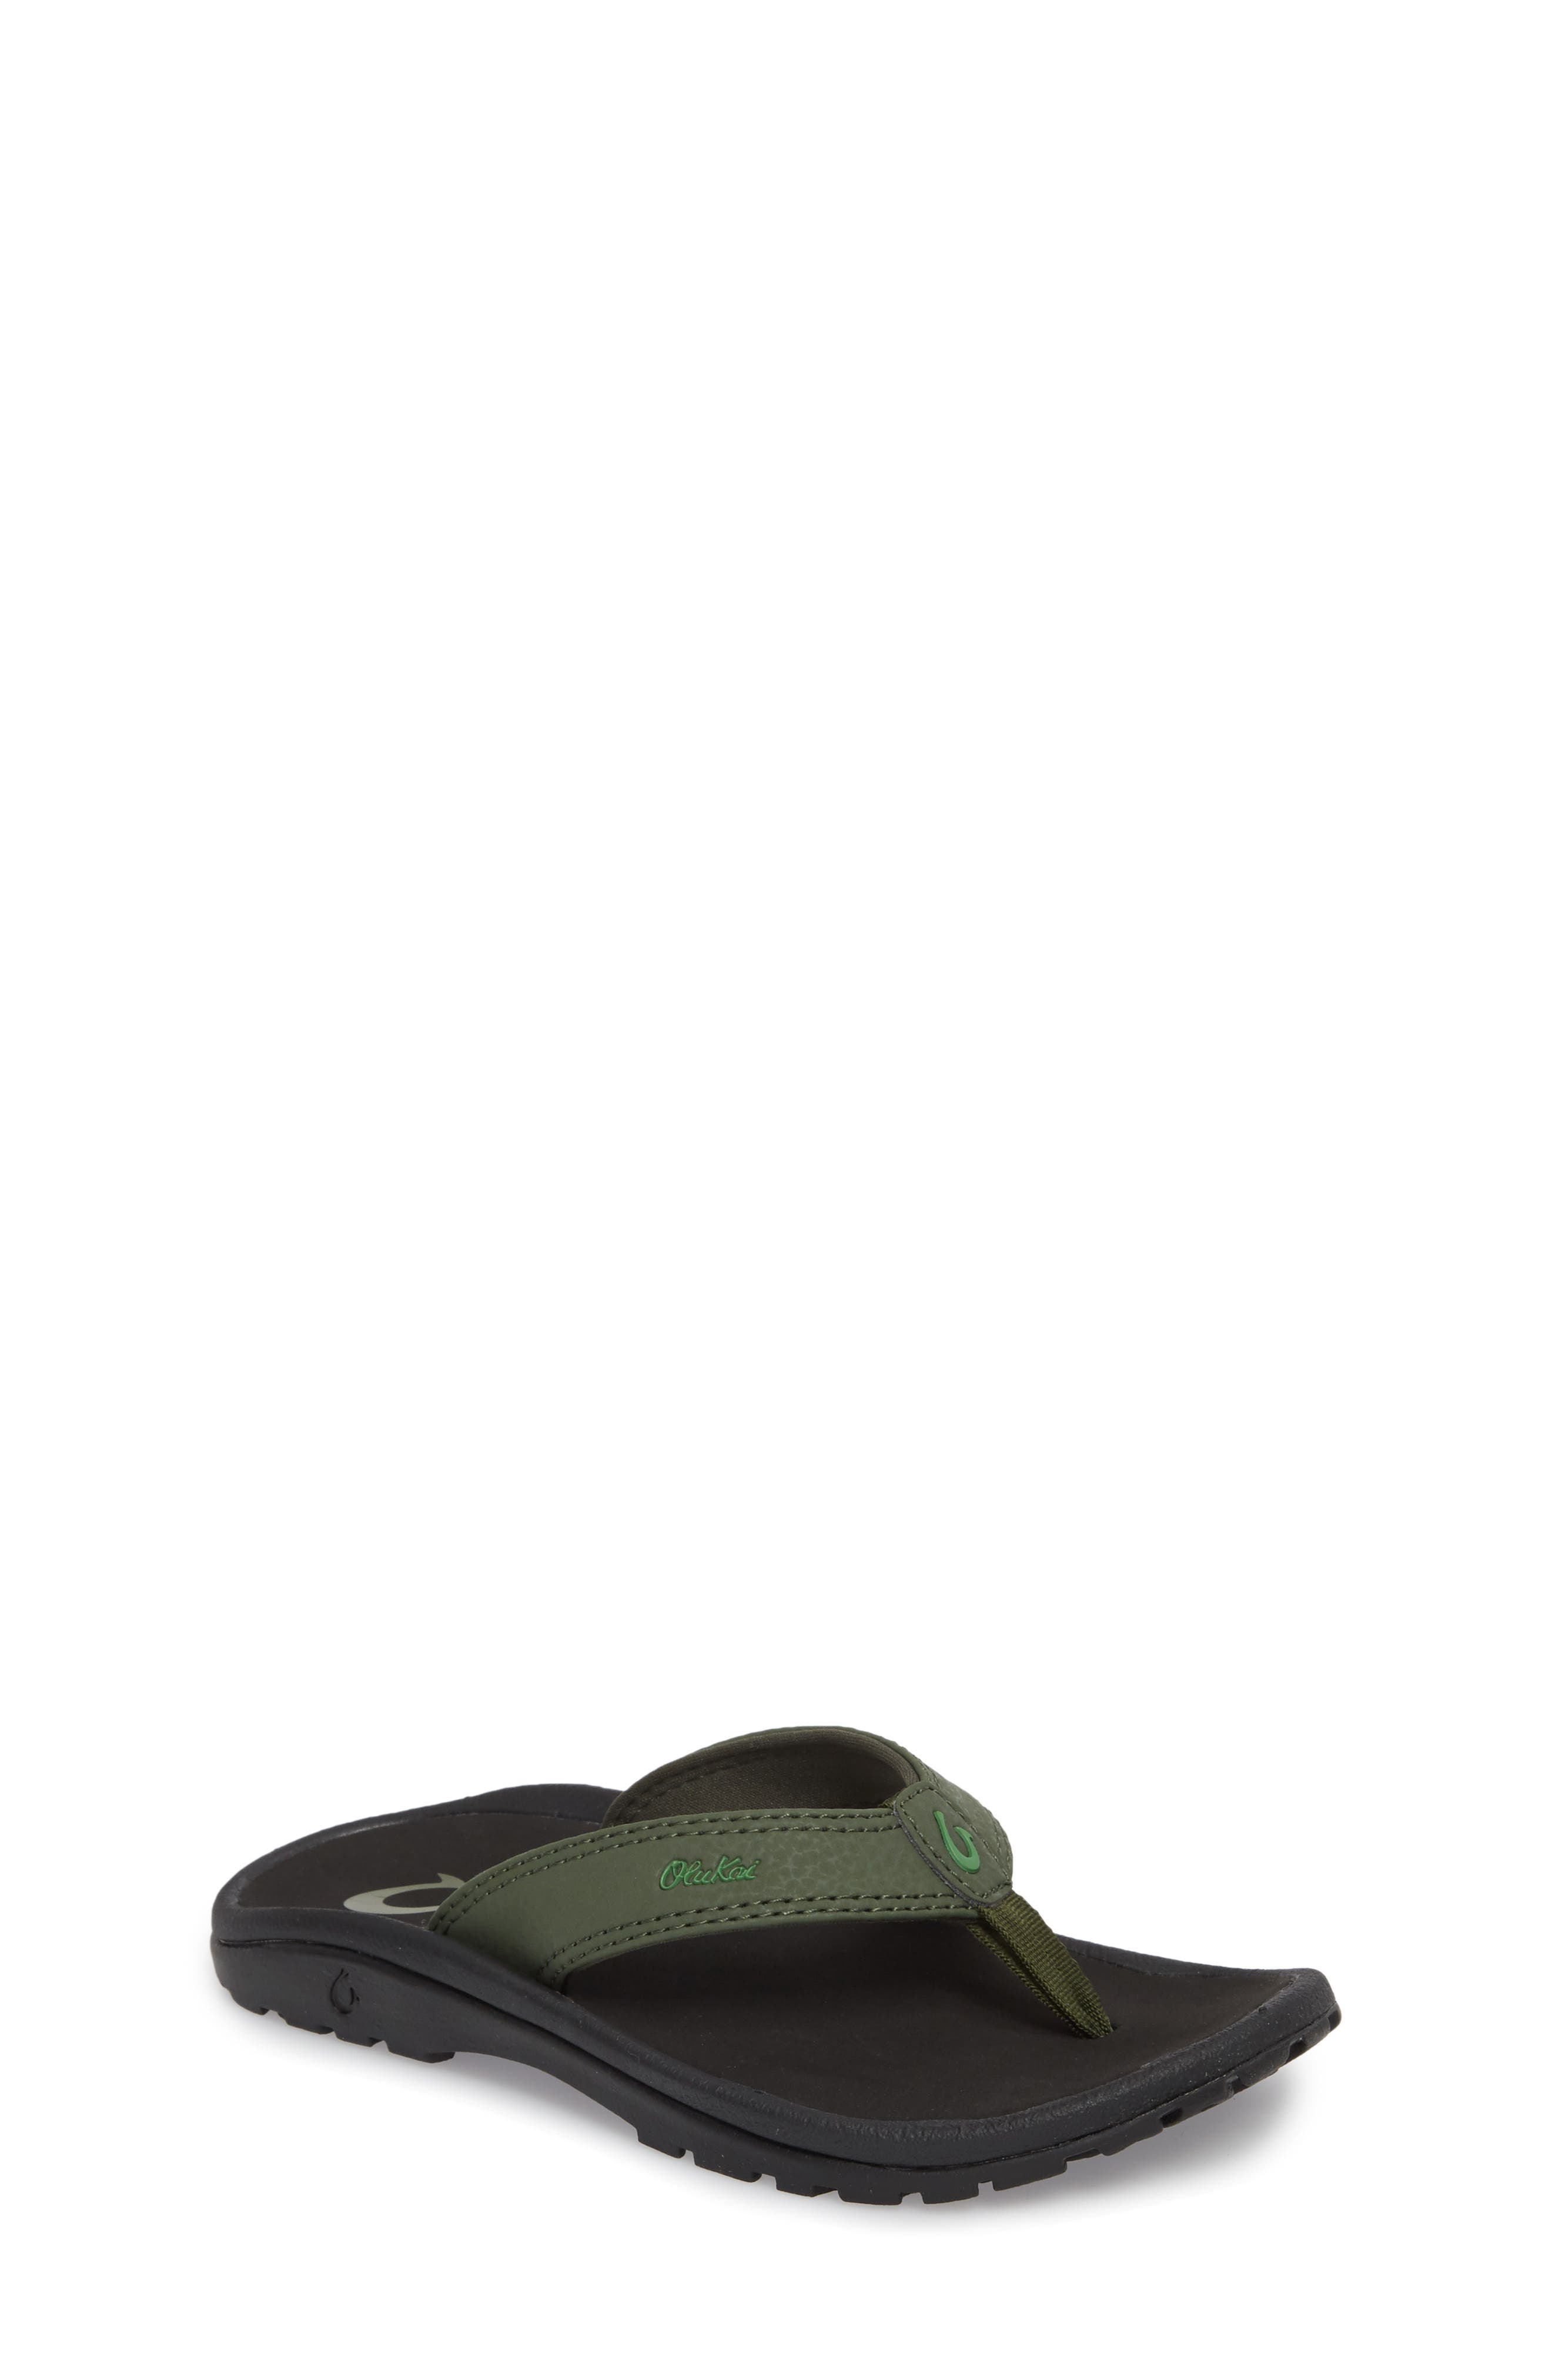 OluKai 'Ohana' Sandal (Toddler, Little Kid & Big Kid)